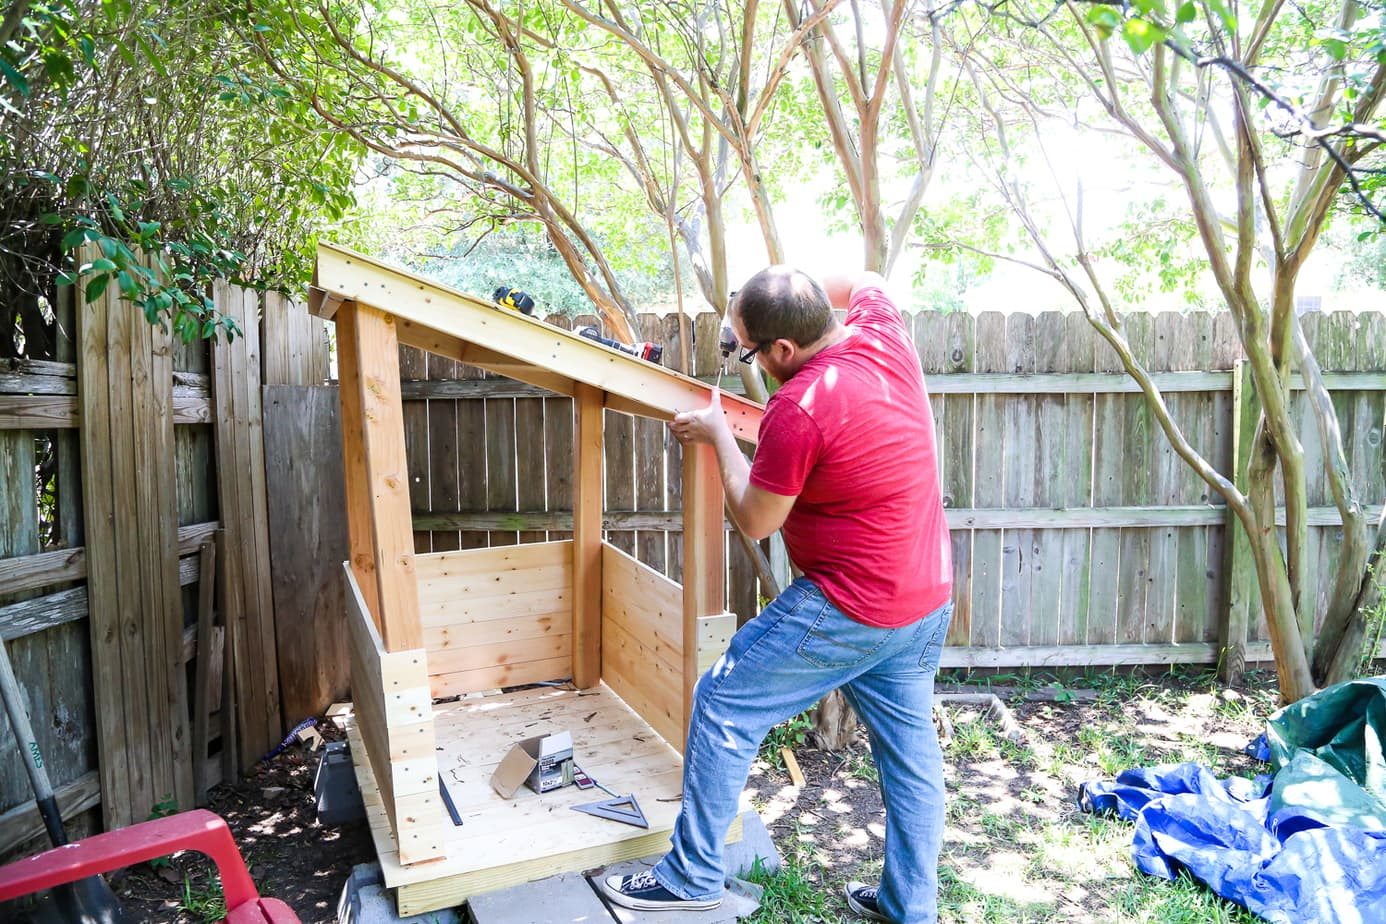 Roofing for DIY playhouse